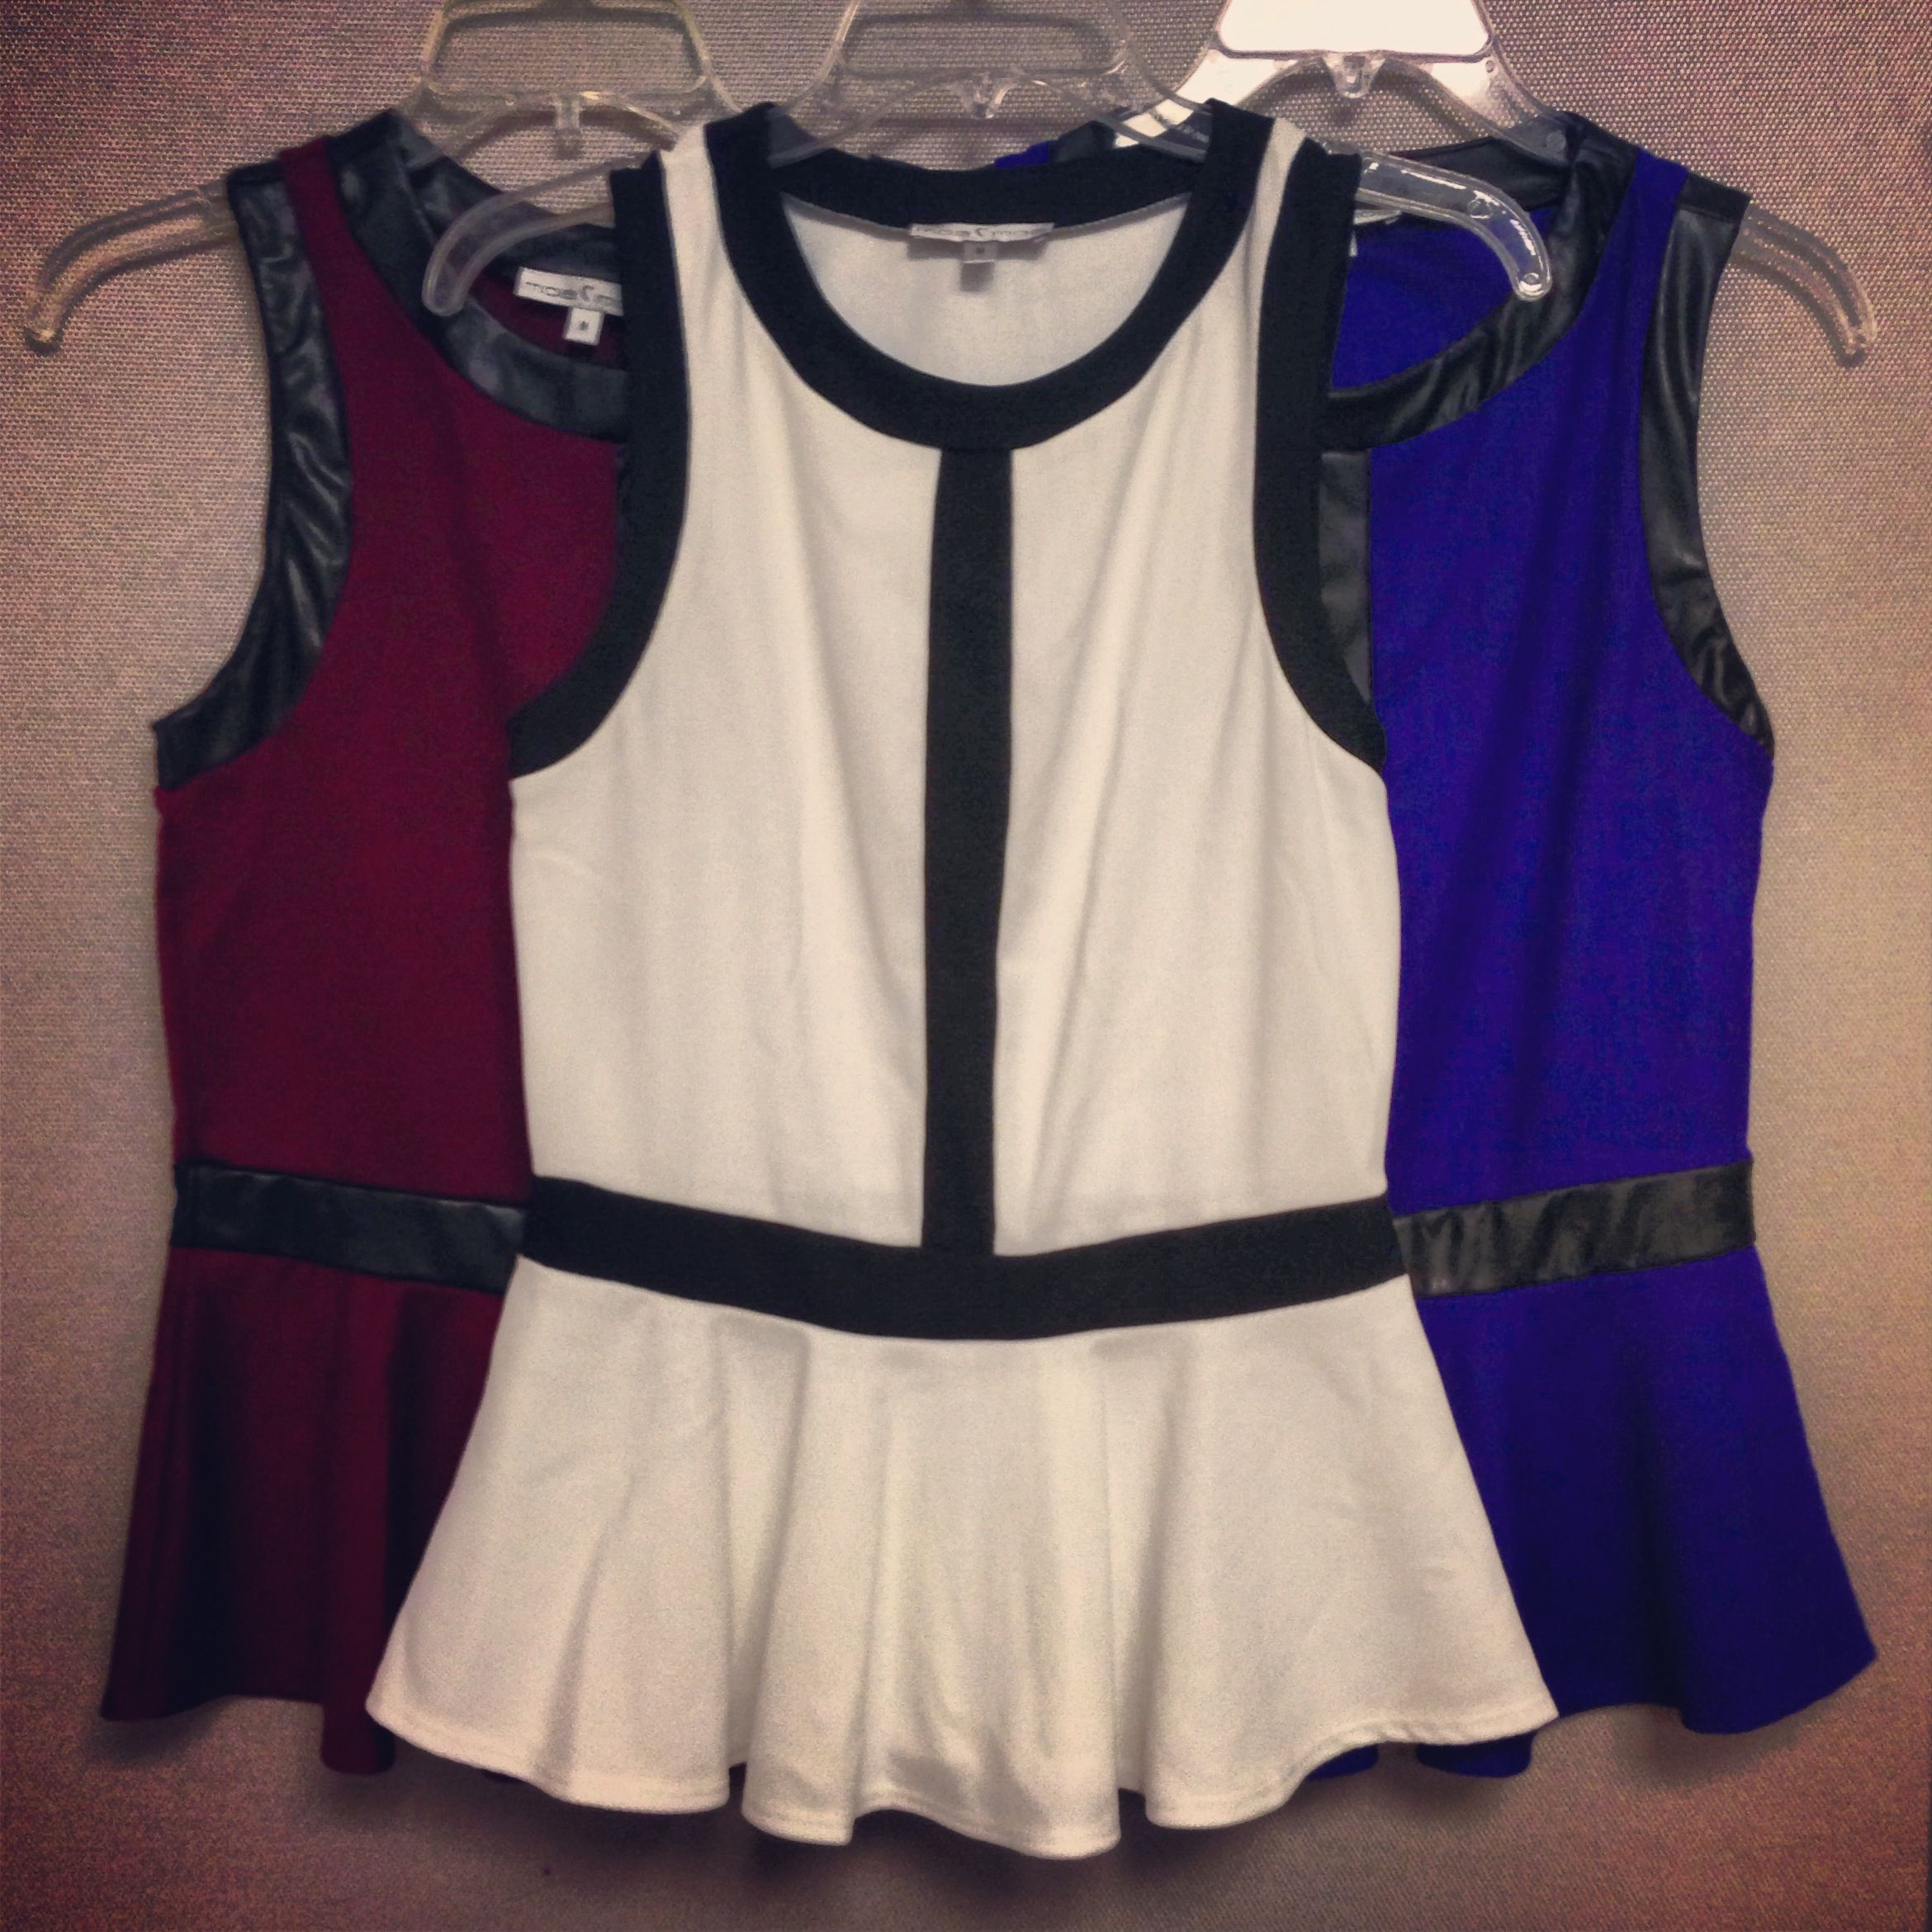 #faux #leather #knit #peplum #top #blouse #black #white #cobalt #blue #burgundy #oxblood #mixedmaterials #fall #fashion #womens #style